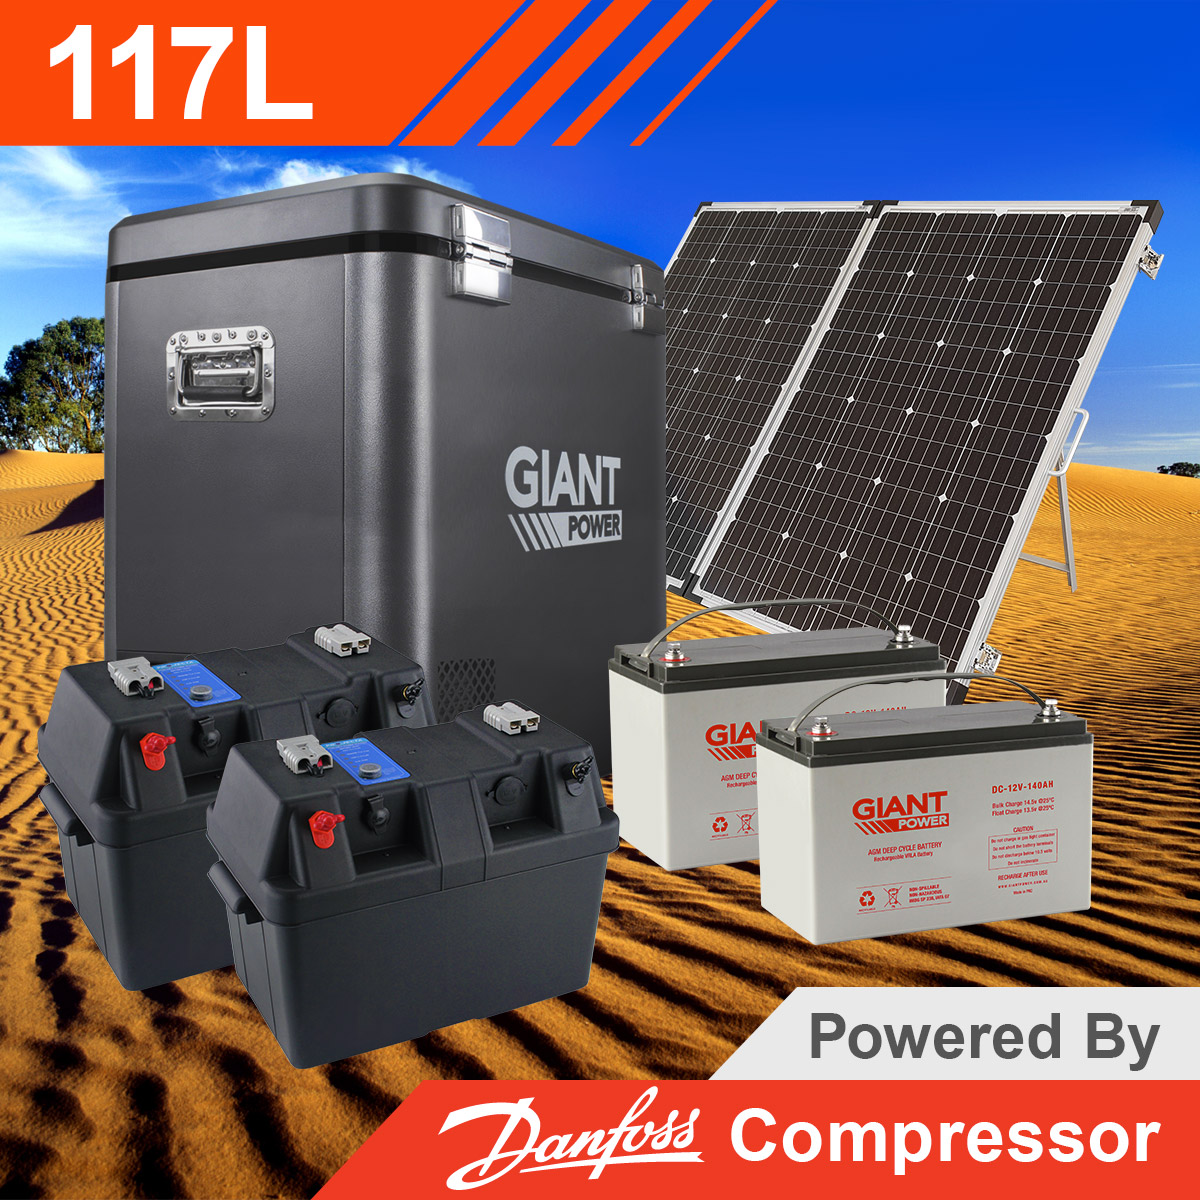 Complete Solar Kits For Camping Fridges Portable Fridges